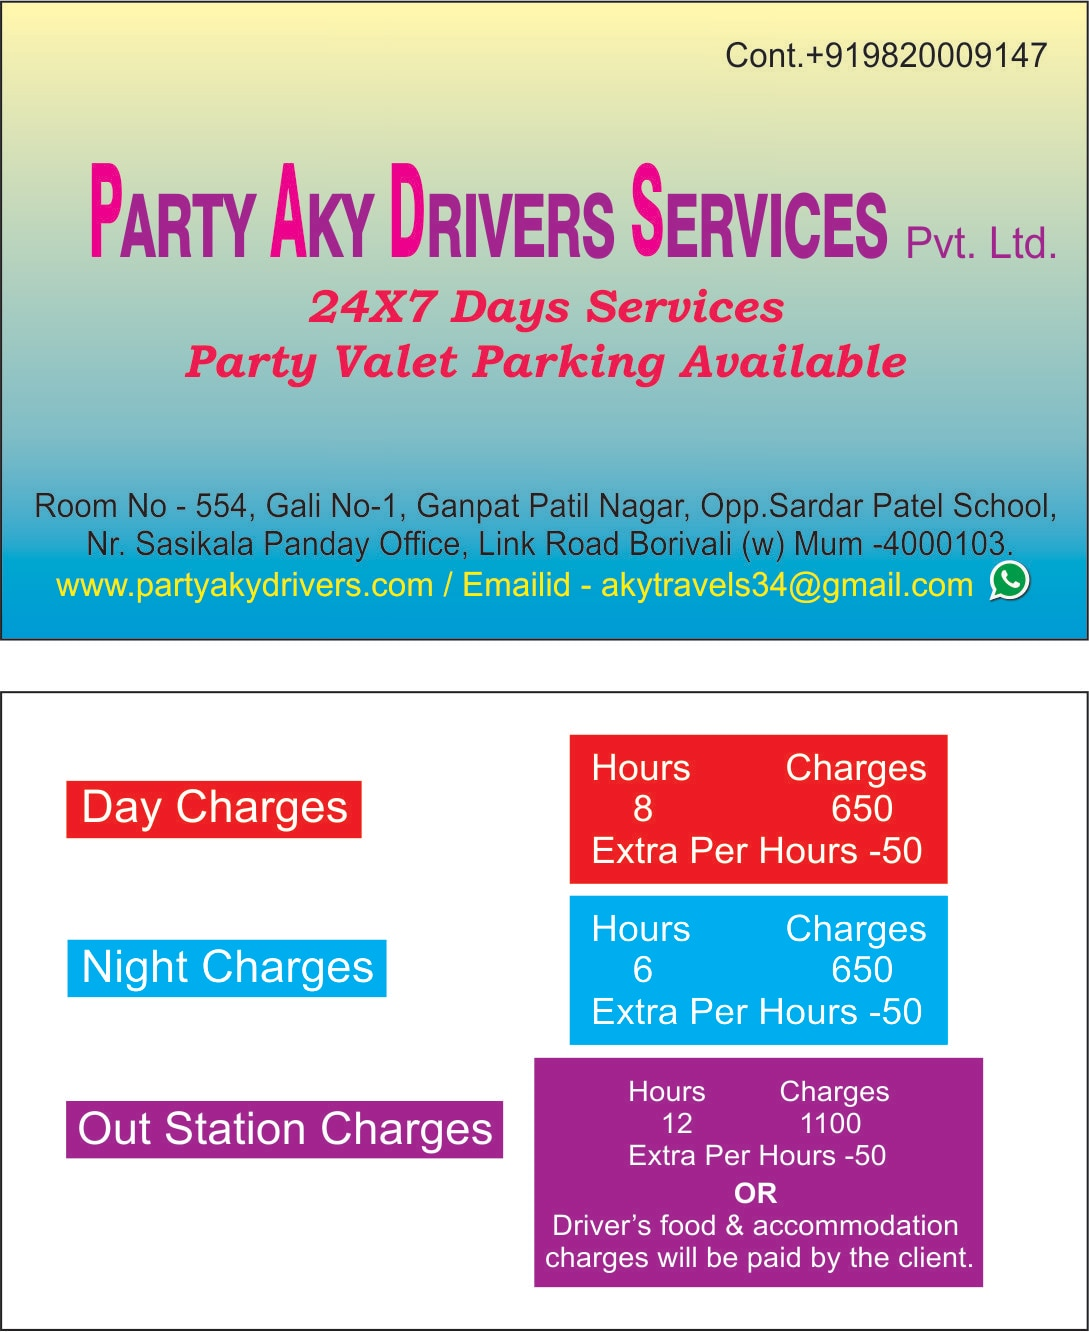 Party Aky Drivers